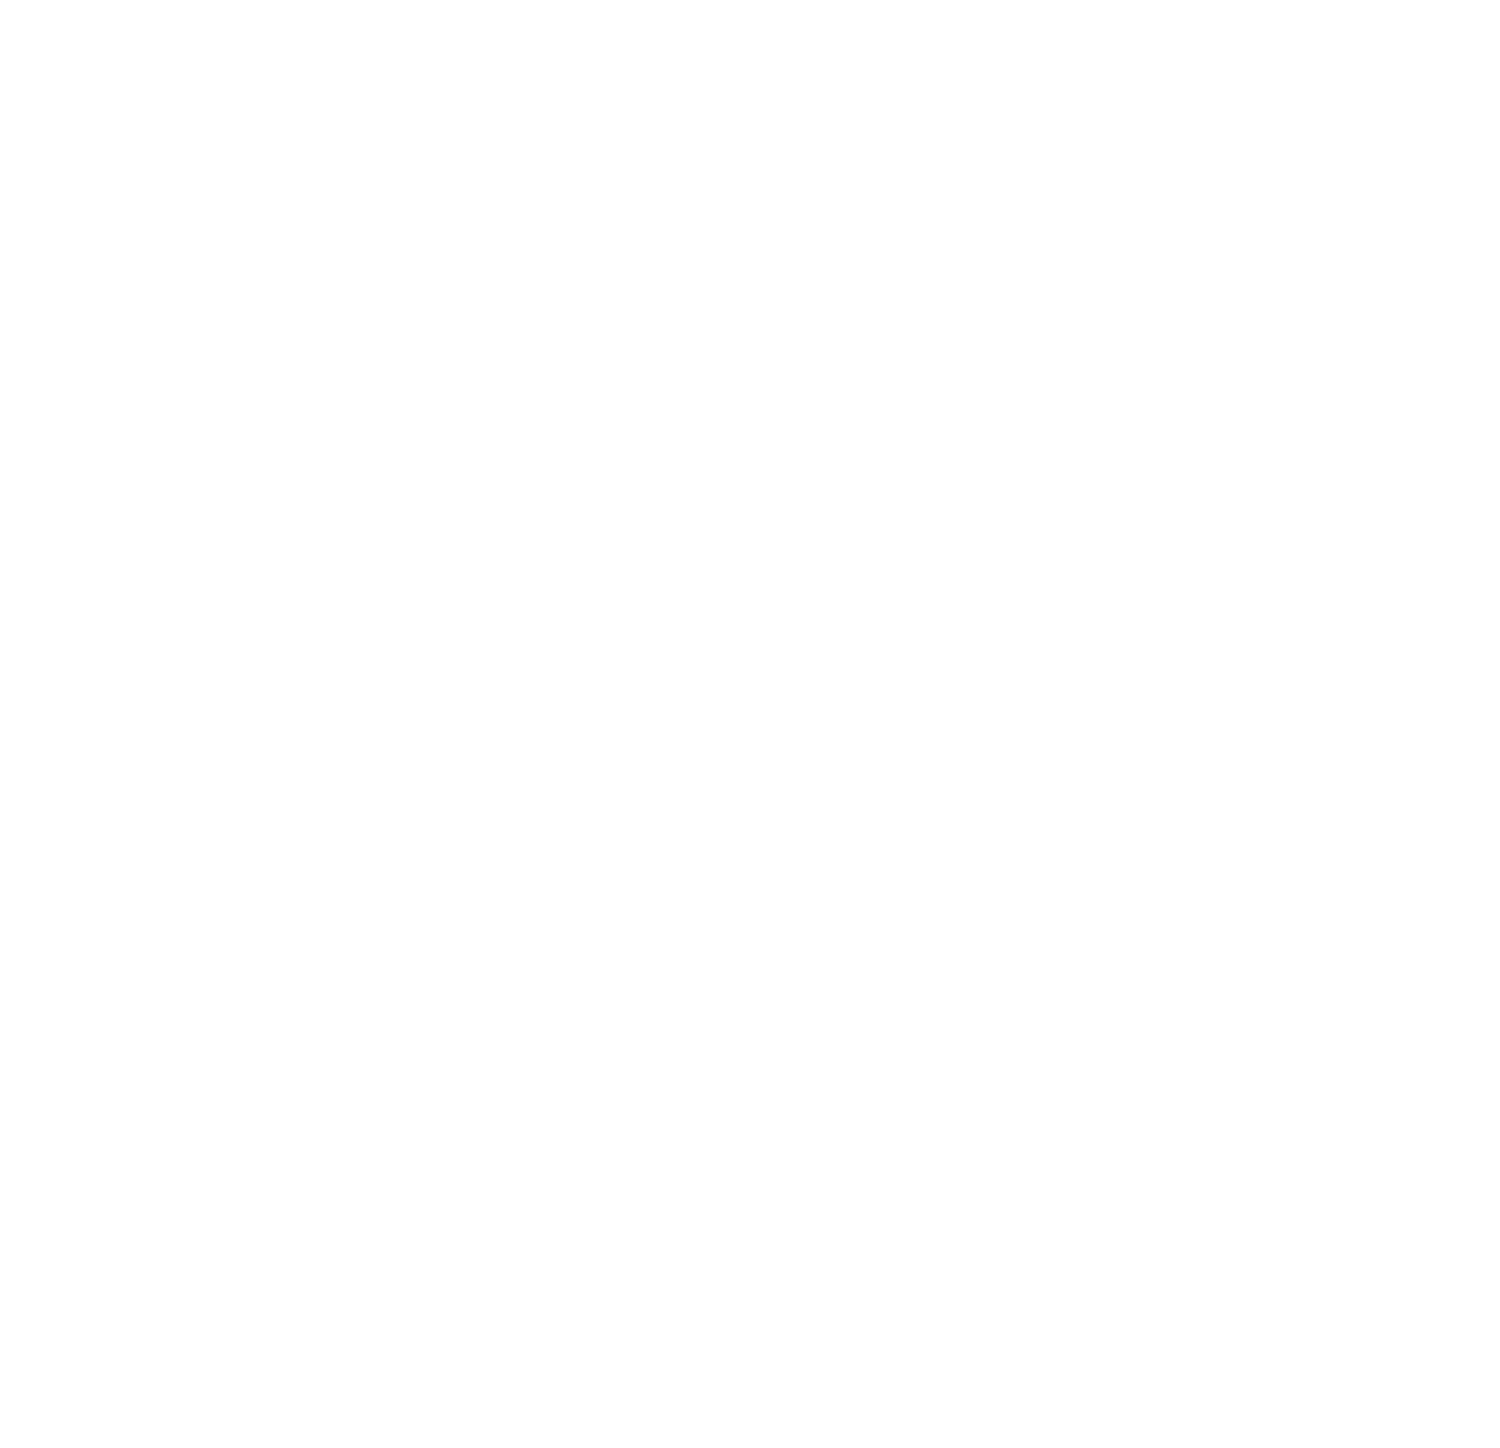 Baton Rouge Oyster Fest